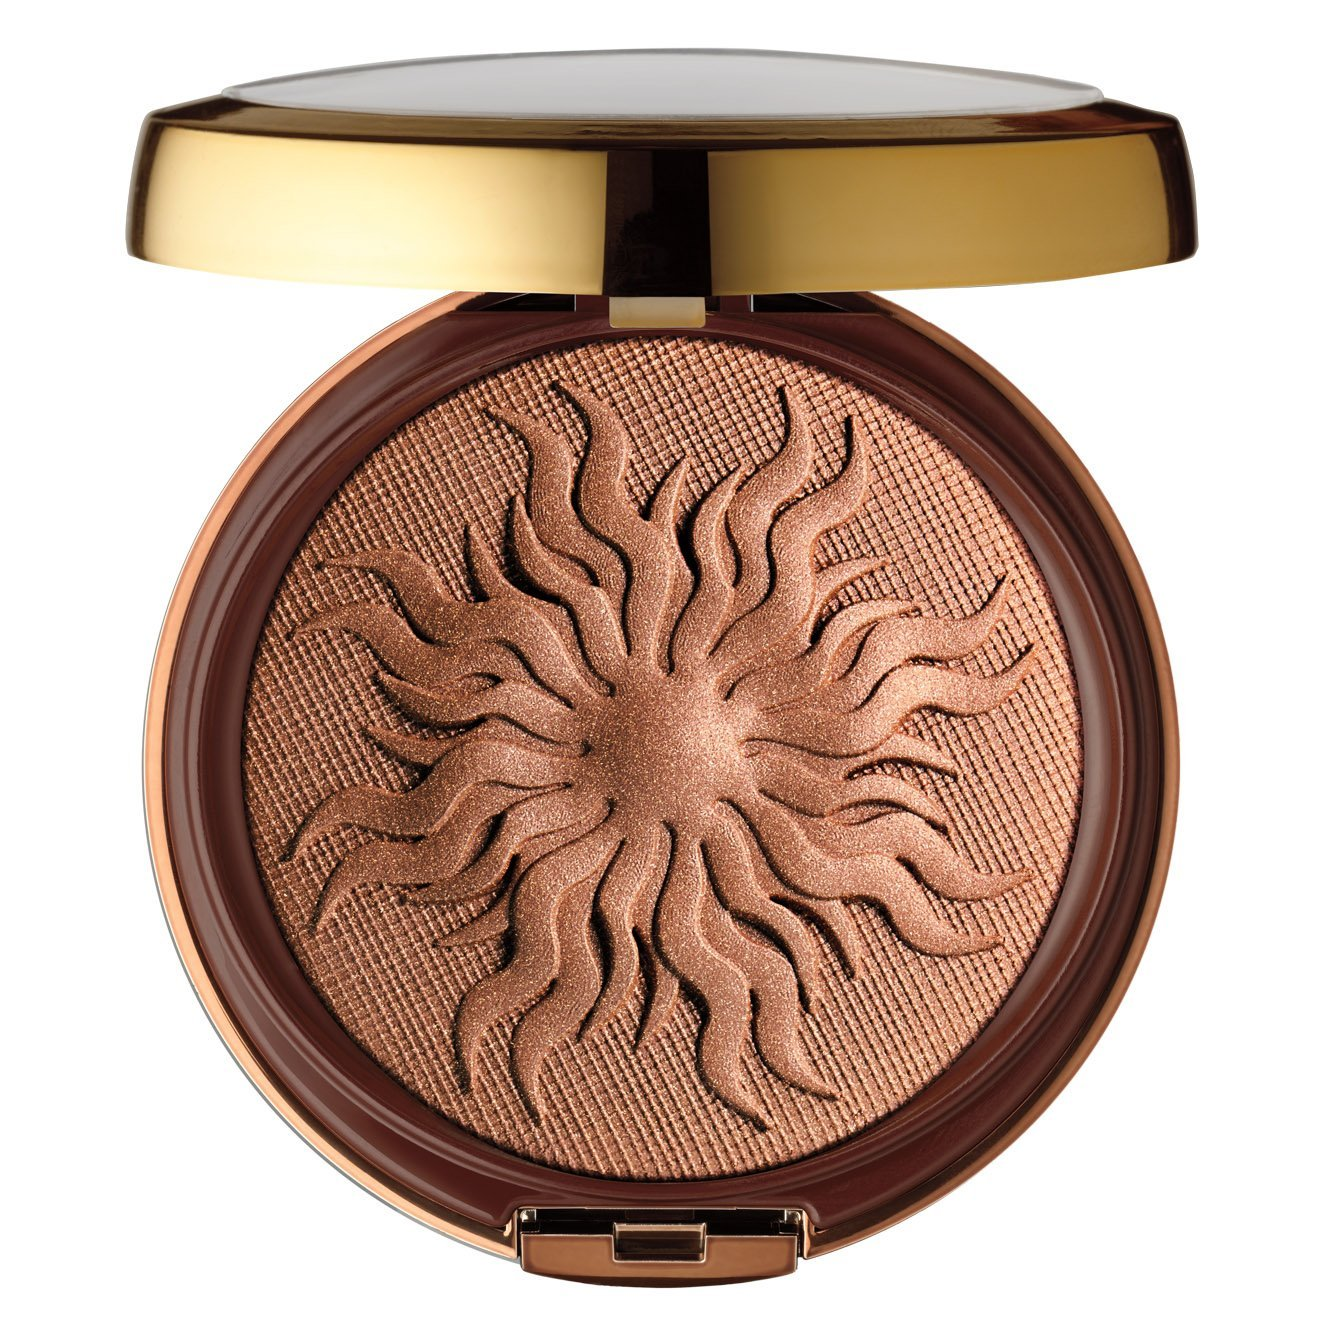 Bronze Booster Glow-Boosting Airbrushing Bronzing Veil Deluxe Edition, Light To Medium, 5.6 Ounce, skin-perfecting finish unlike any other.., By Physicians Formula